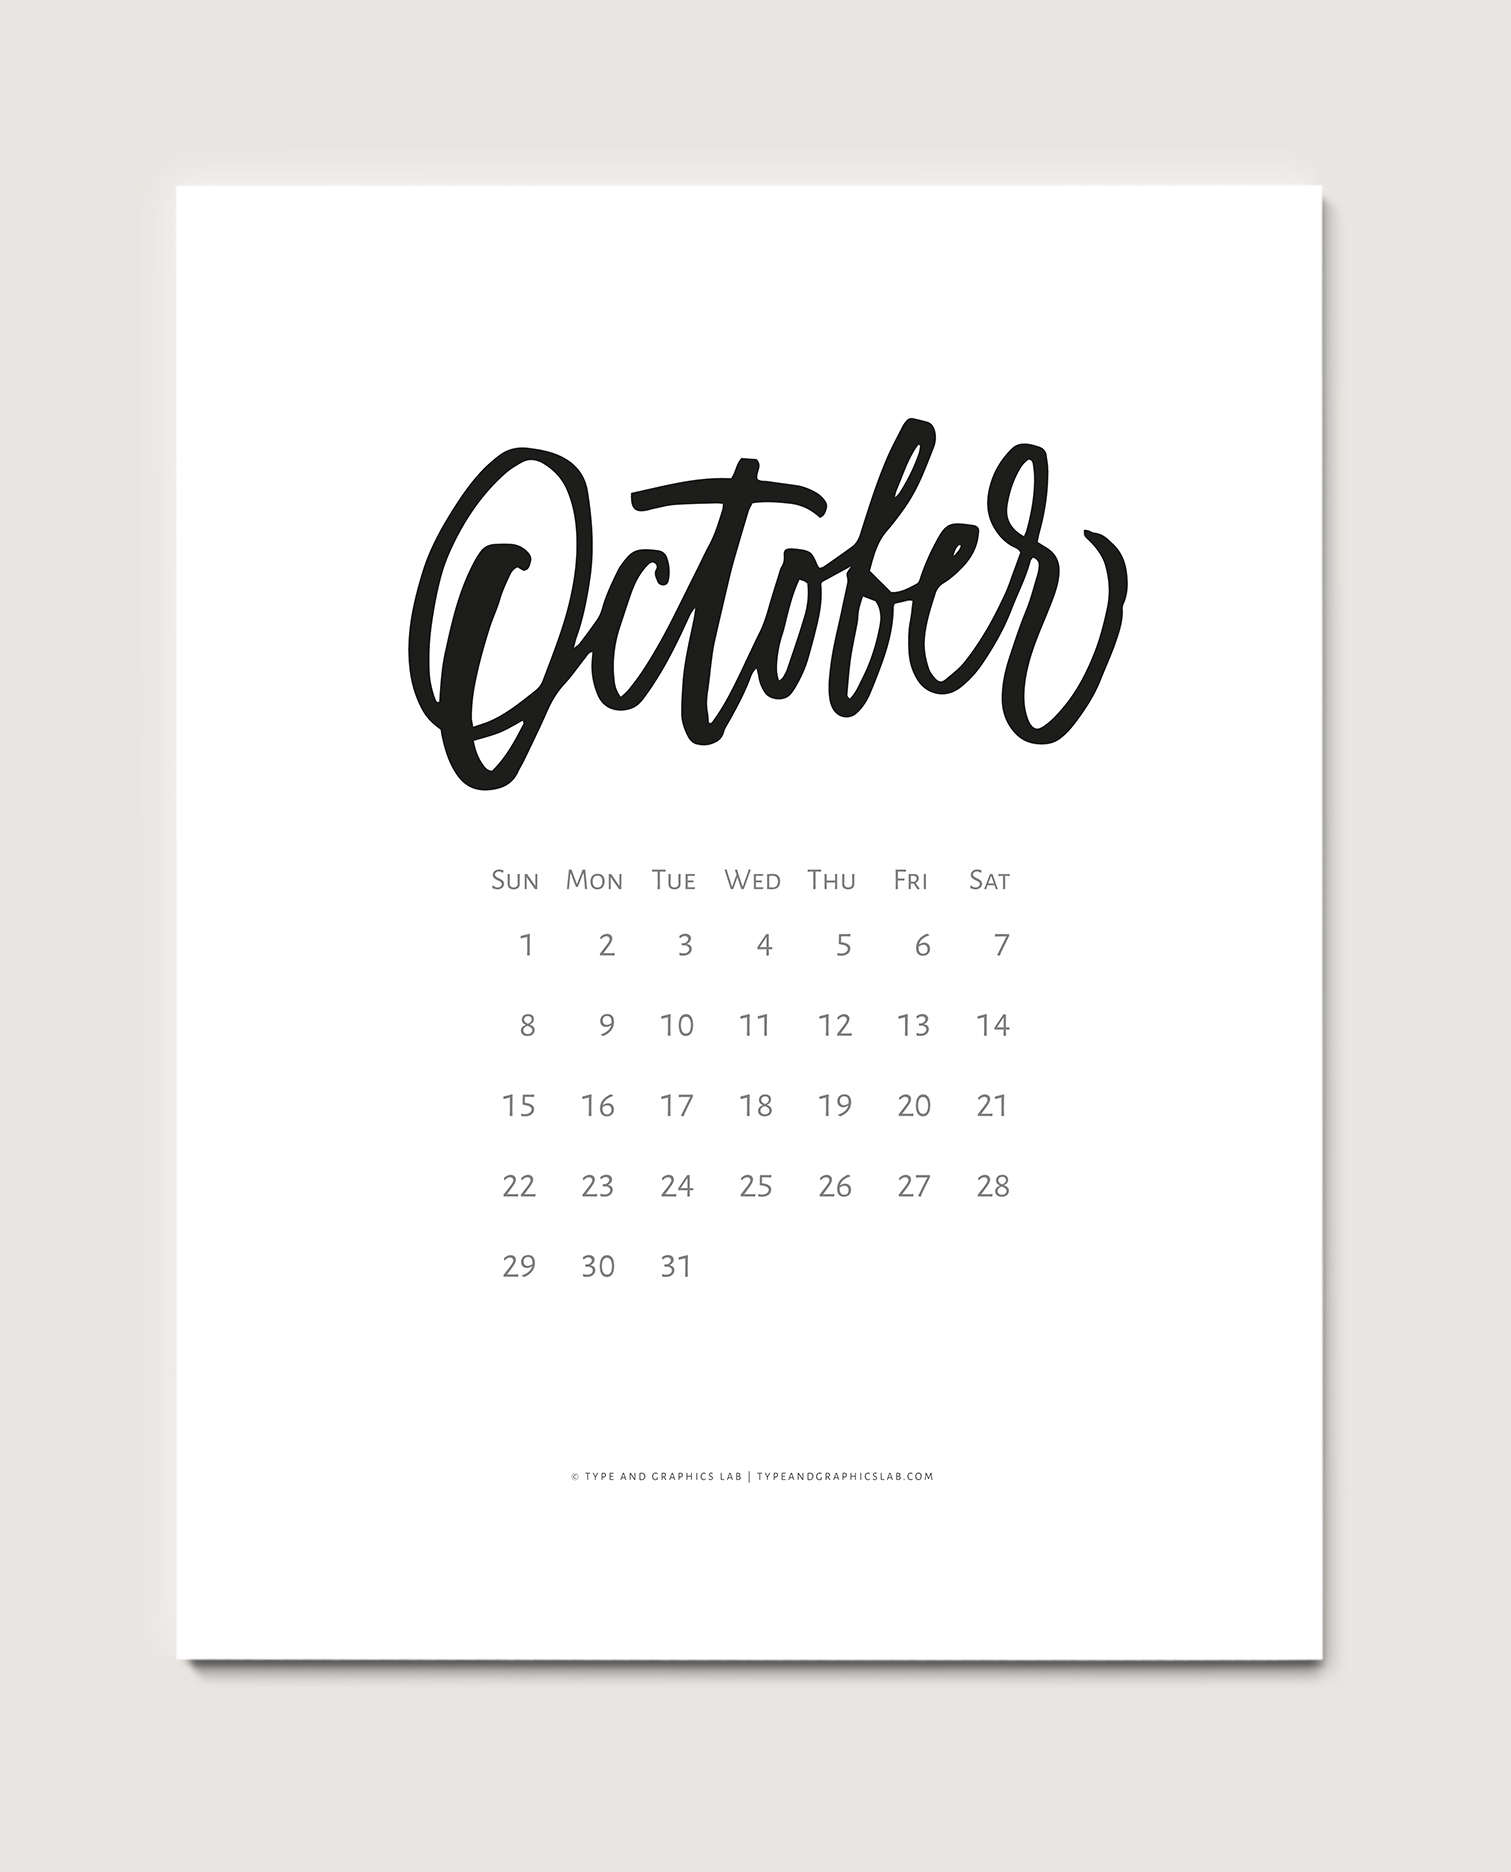 Download a free printable calendar for October 2017 |©typeandgraphicslab.com | For personal use only